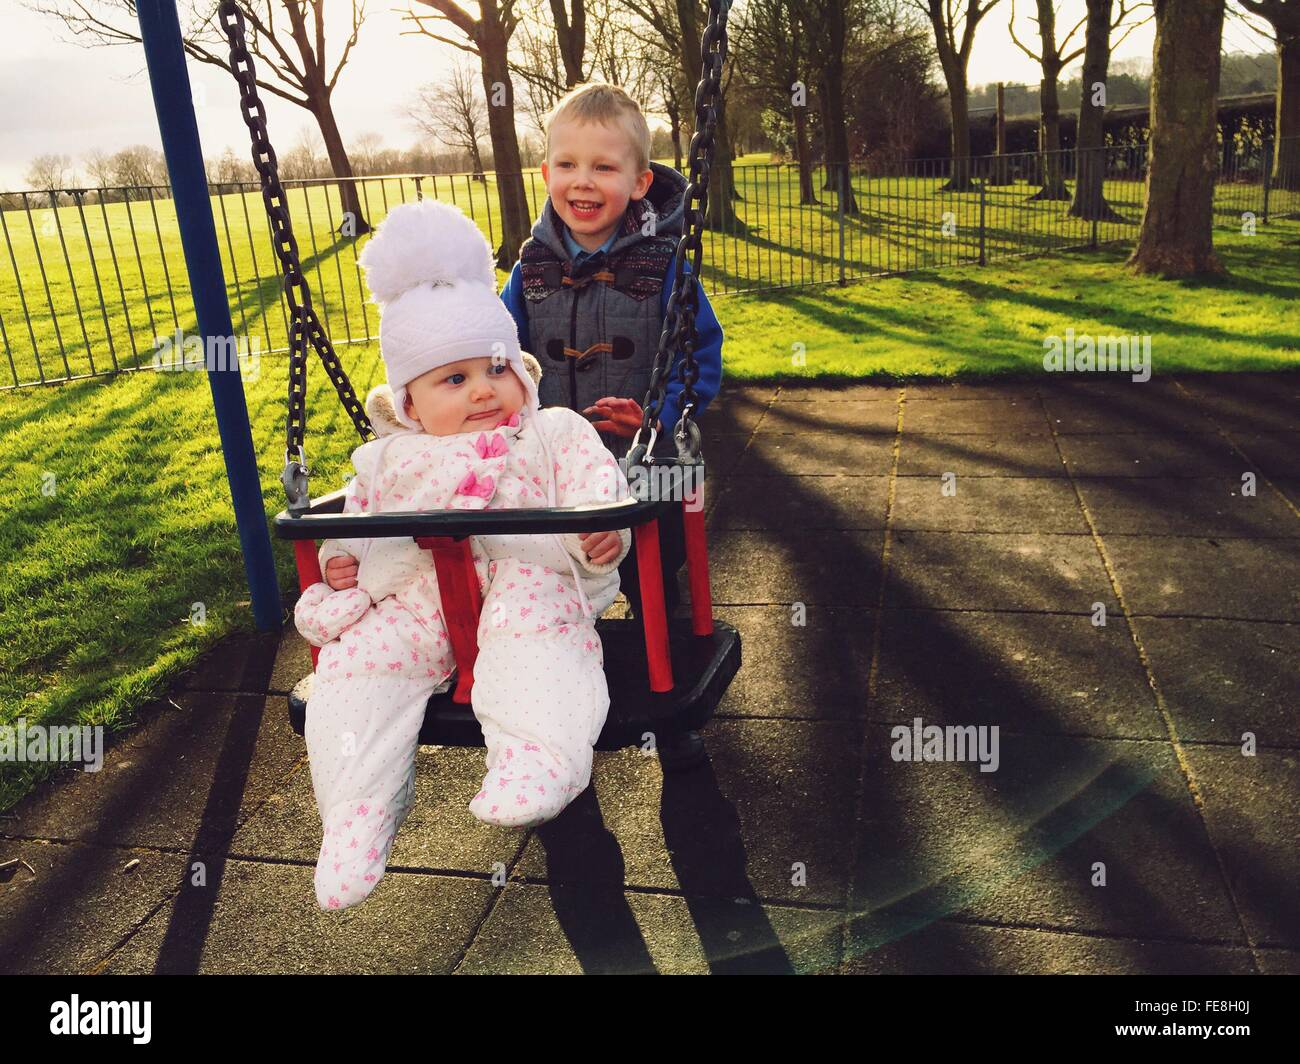 Cute Brother Boy Pushing Sister In Swing At Playground - Stock Image